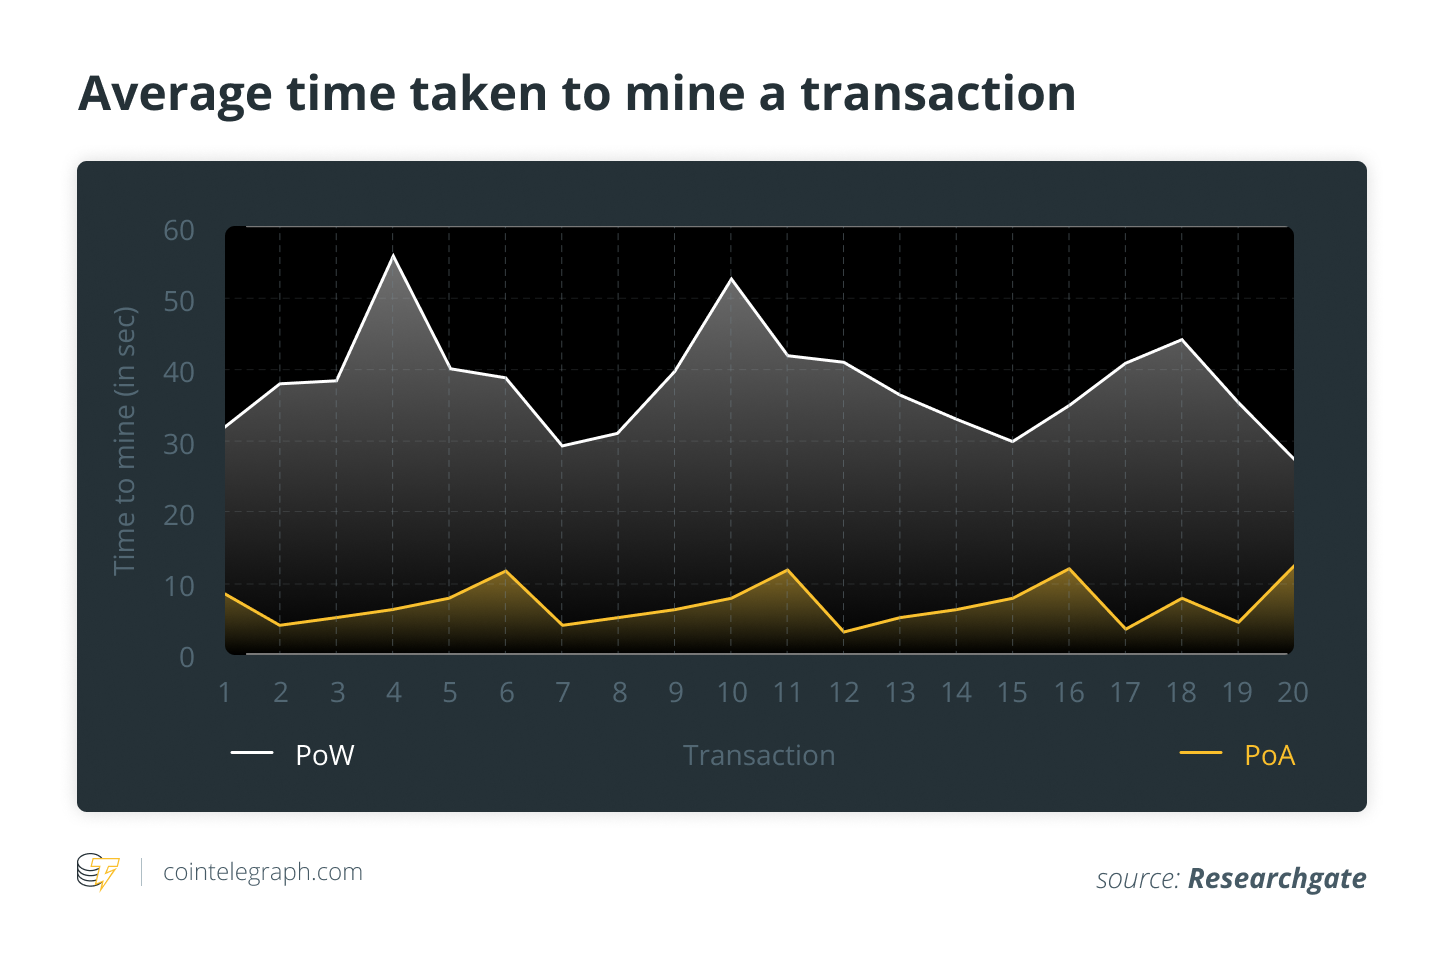 Average time to mine a transaction